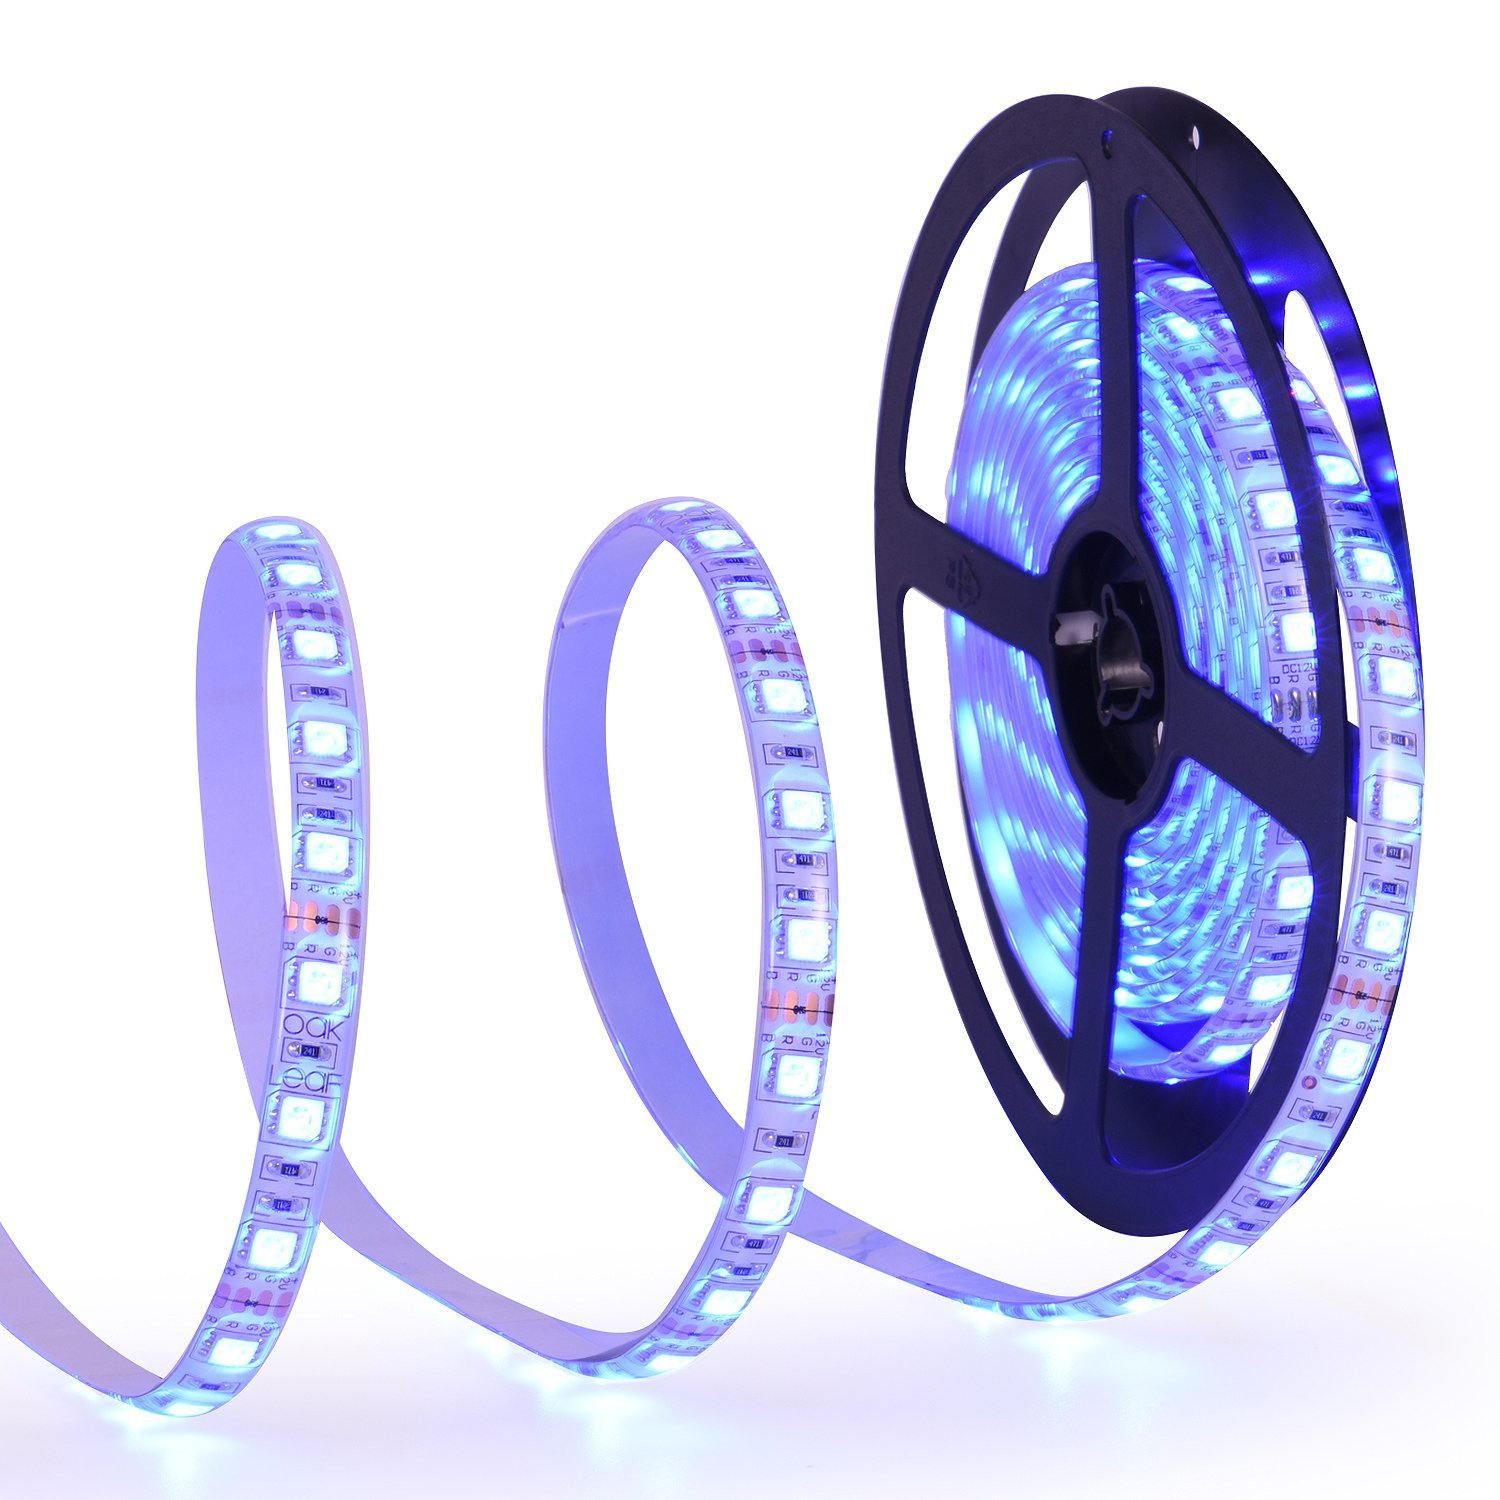 Oak Leaf SMD5050 Waterproof LED Strip Lights 16.4ft RGB Strip Light for Lighting and Decoration